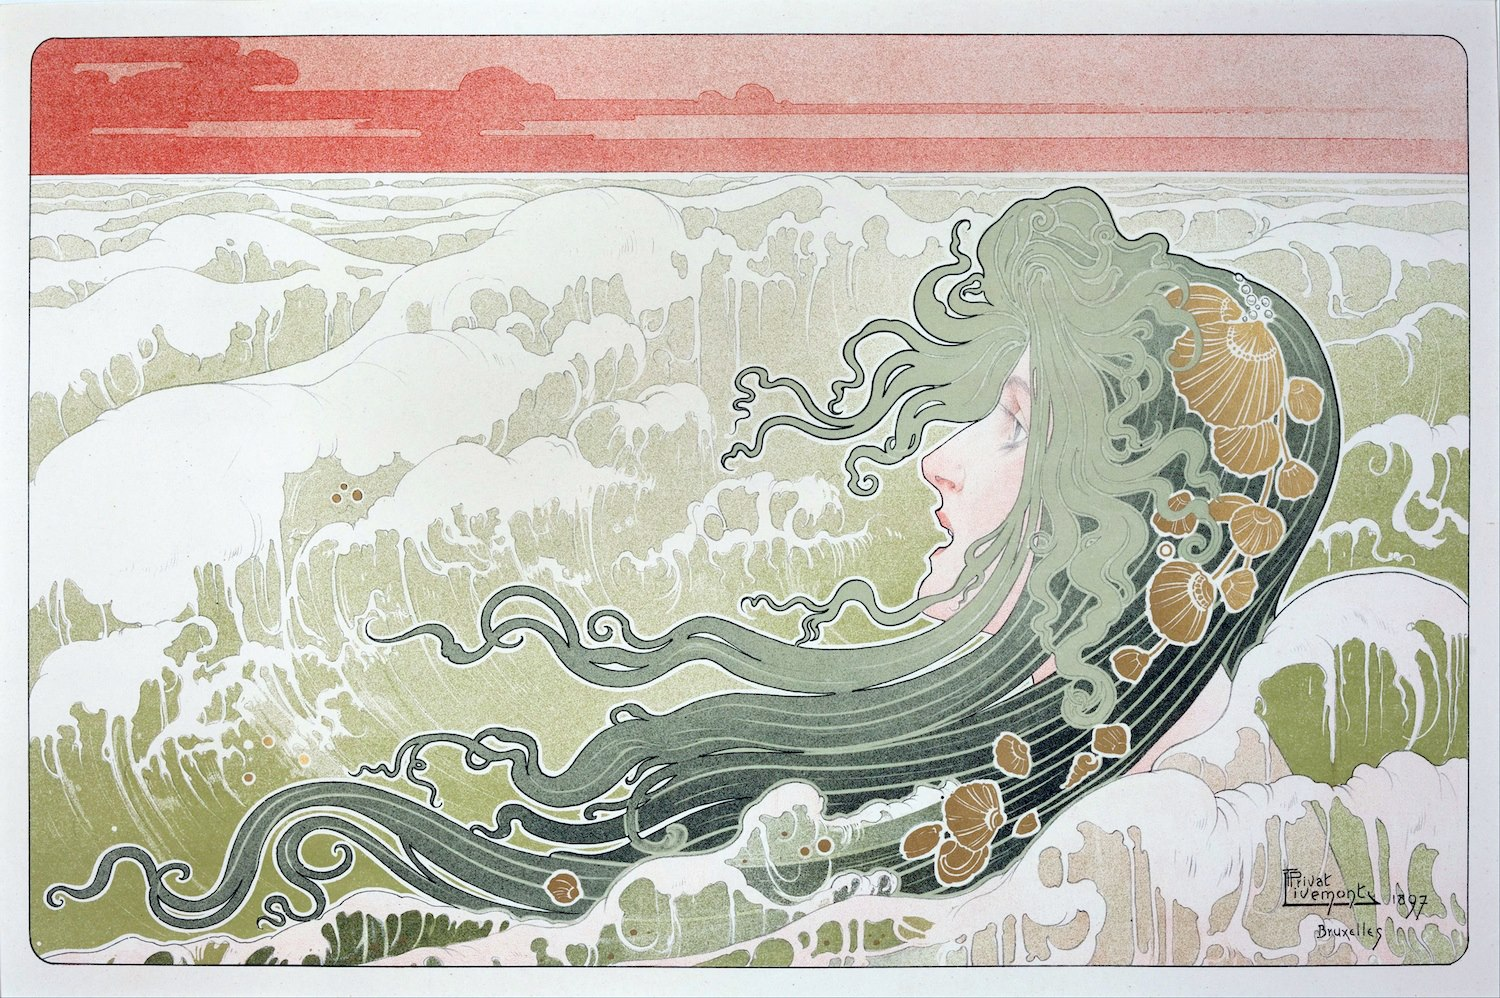 Henri Privat-Livemont - La Vague